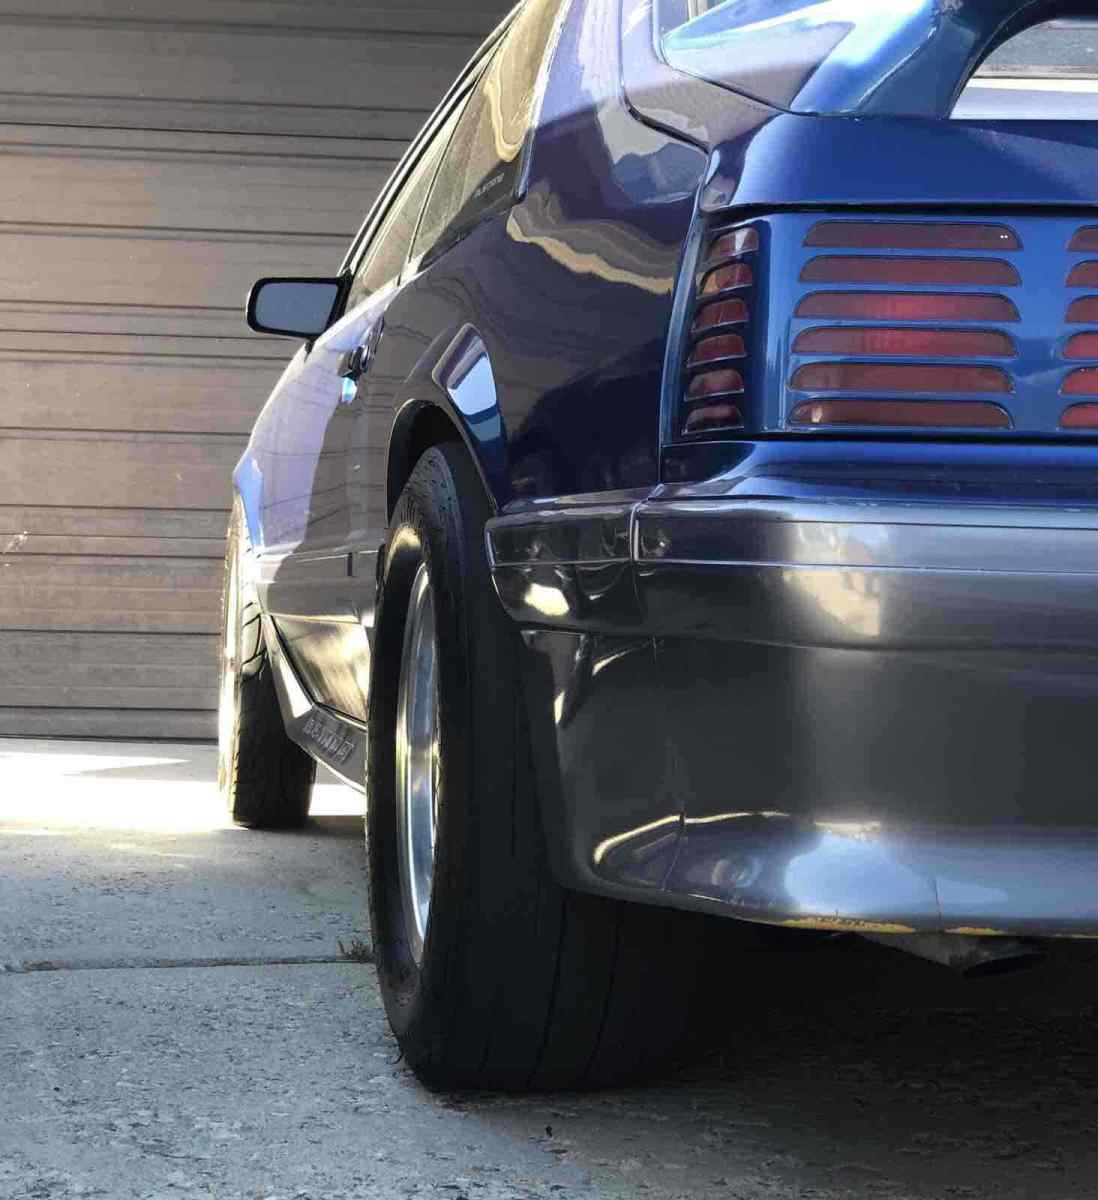 1989 Mustang Gt Blue And Silver